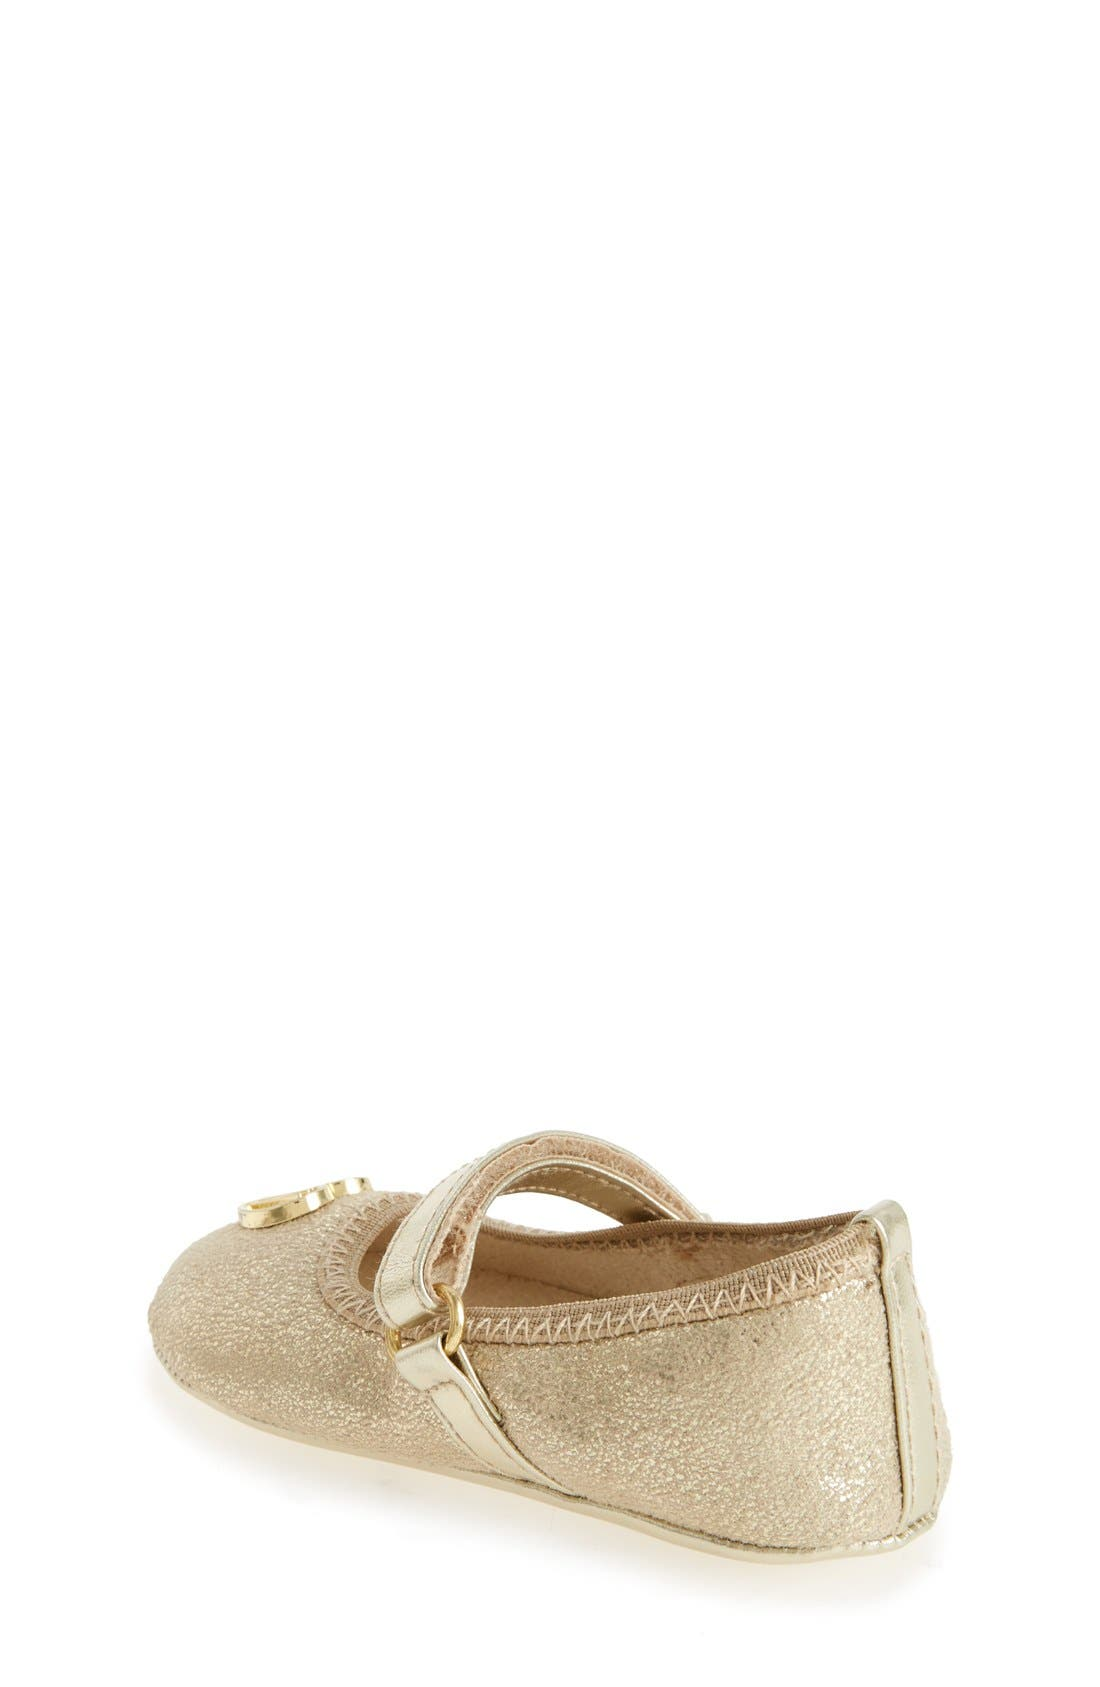 Nameplate Mary Jane Crib Shoe,                             Alternate thumbnail 5, color,                             719